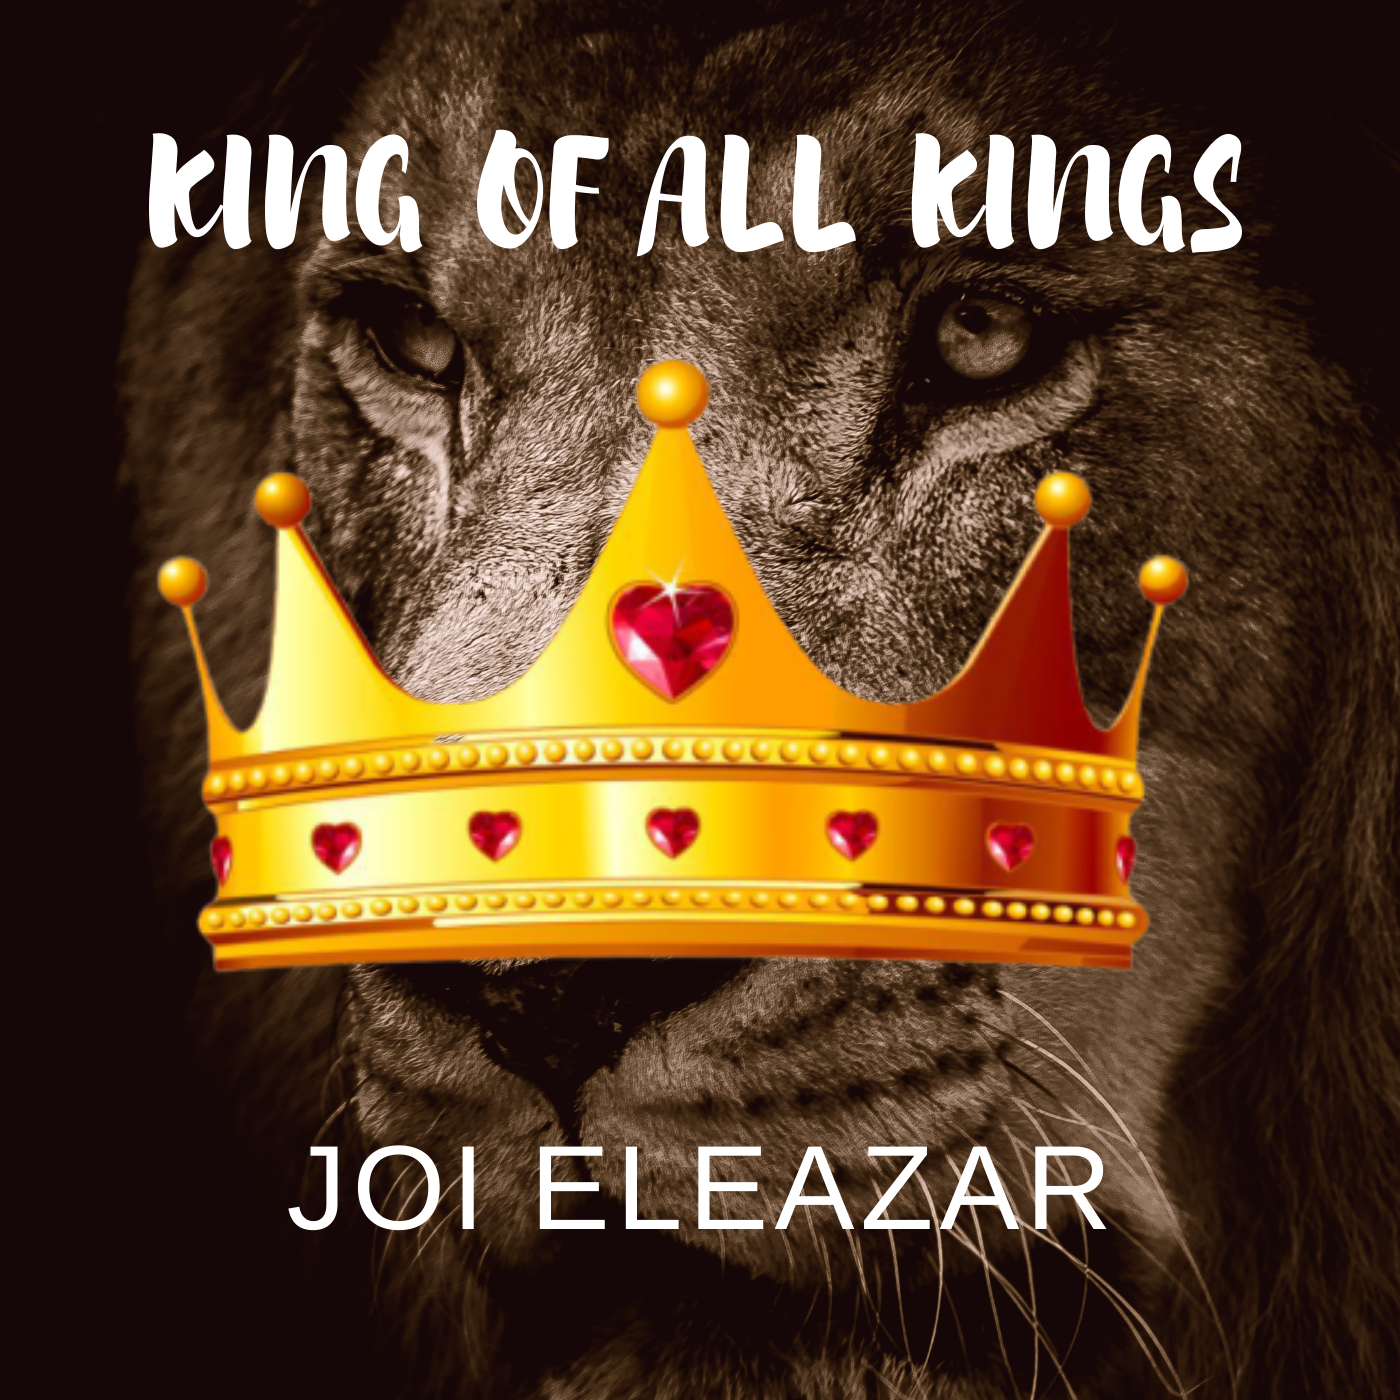 KING OF ALL KINGS - Joi Eleazar